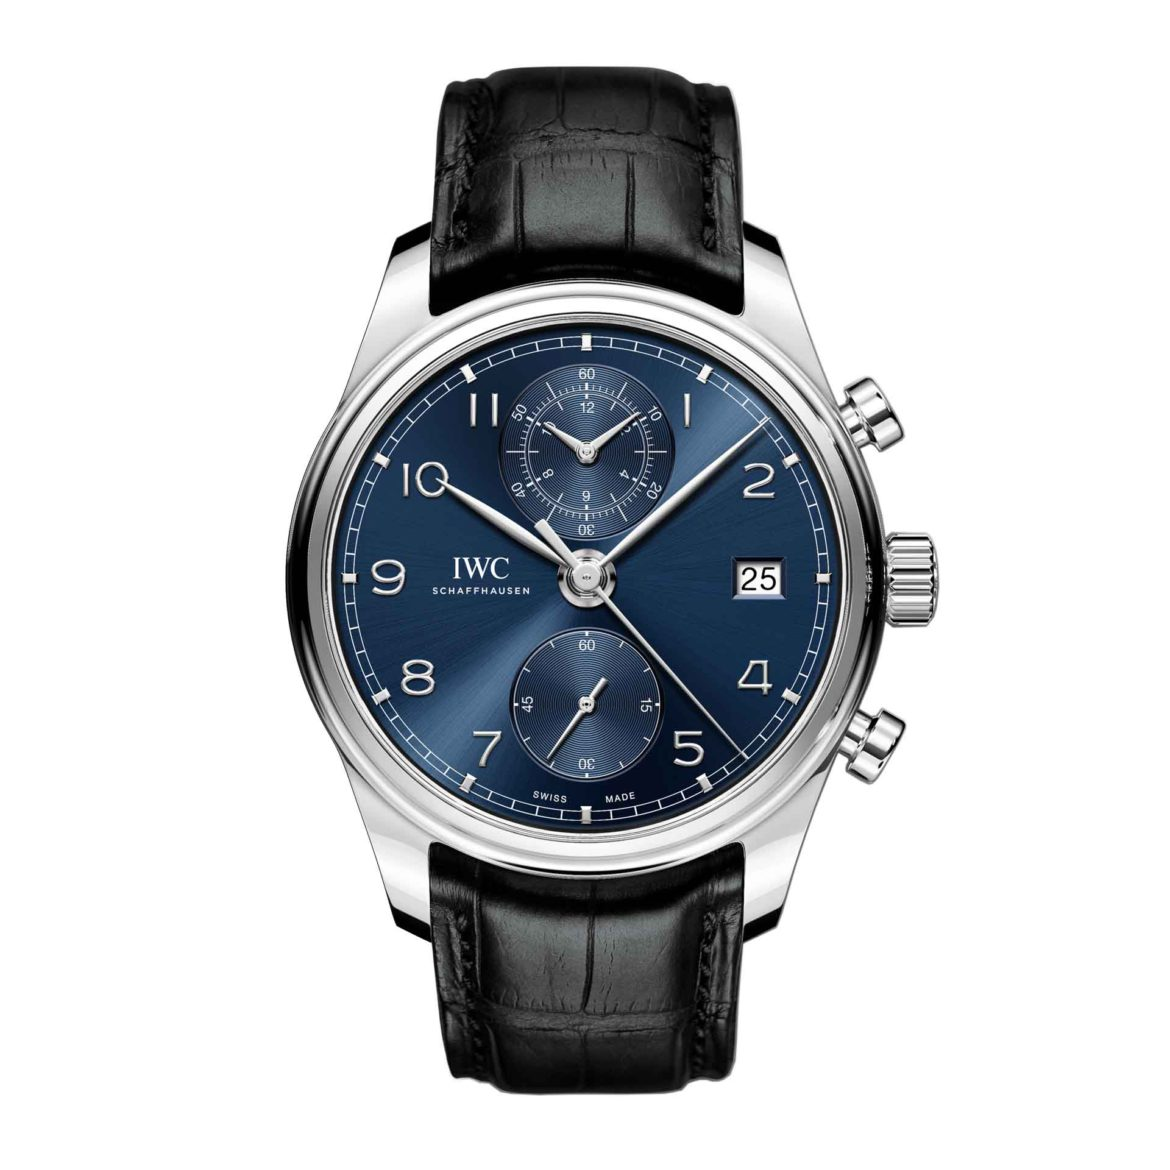 IWC Portugieser Chronograph Classic 2017